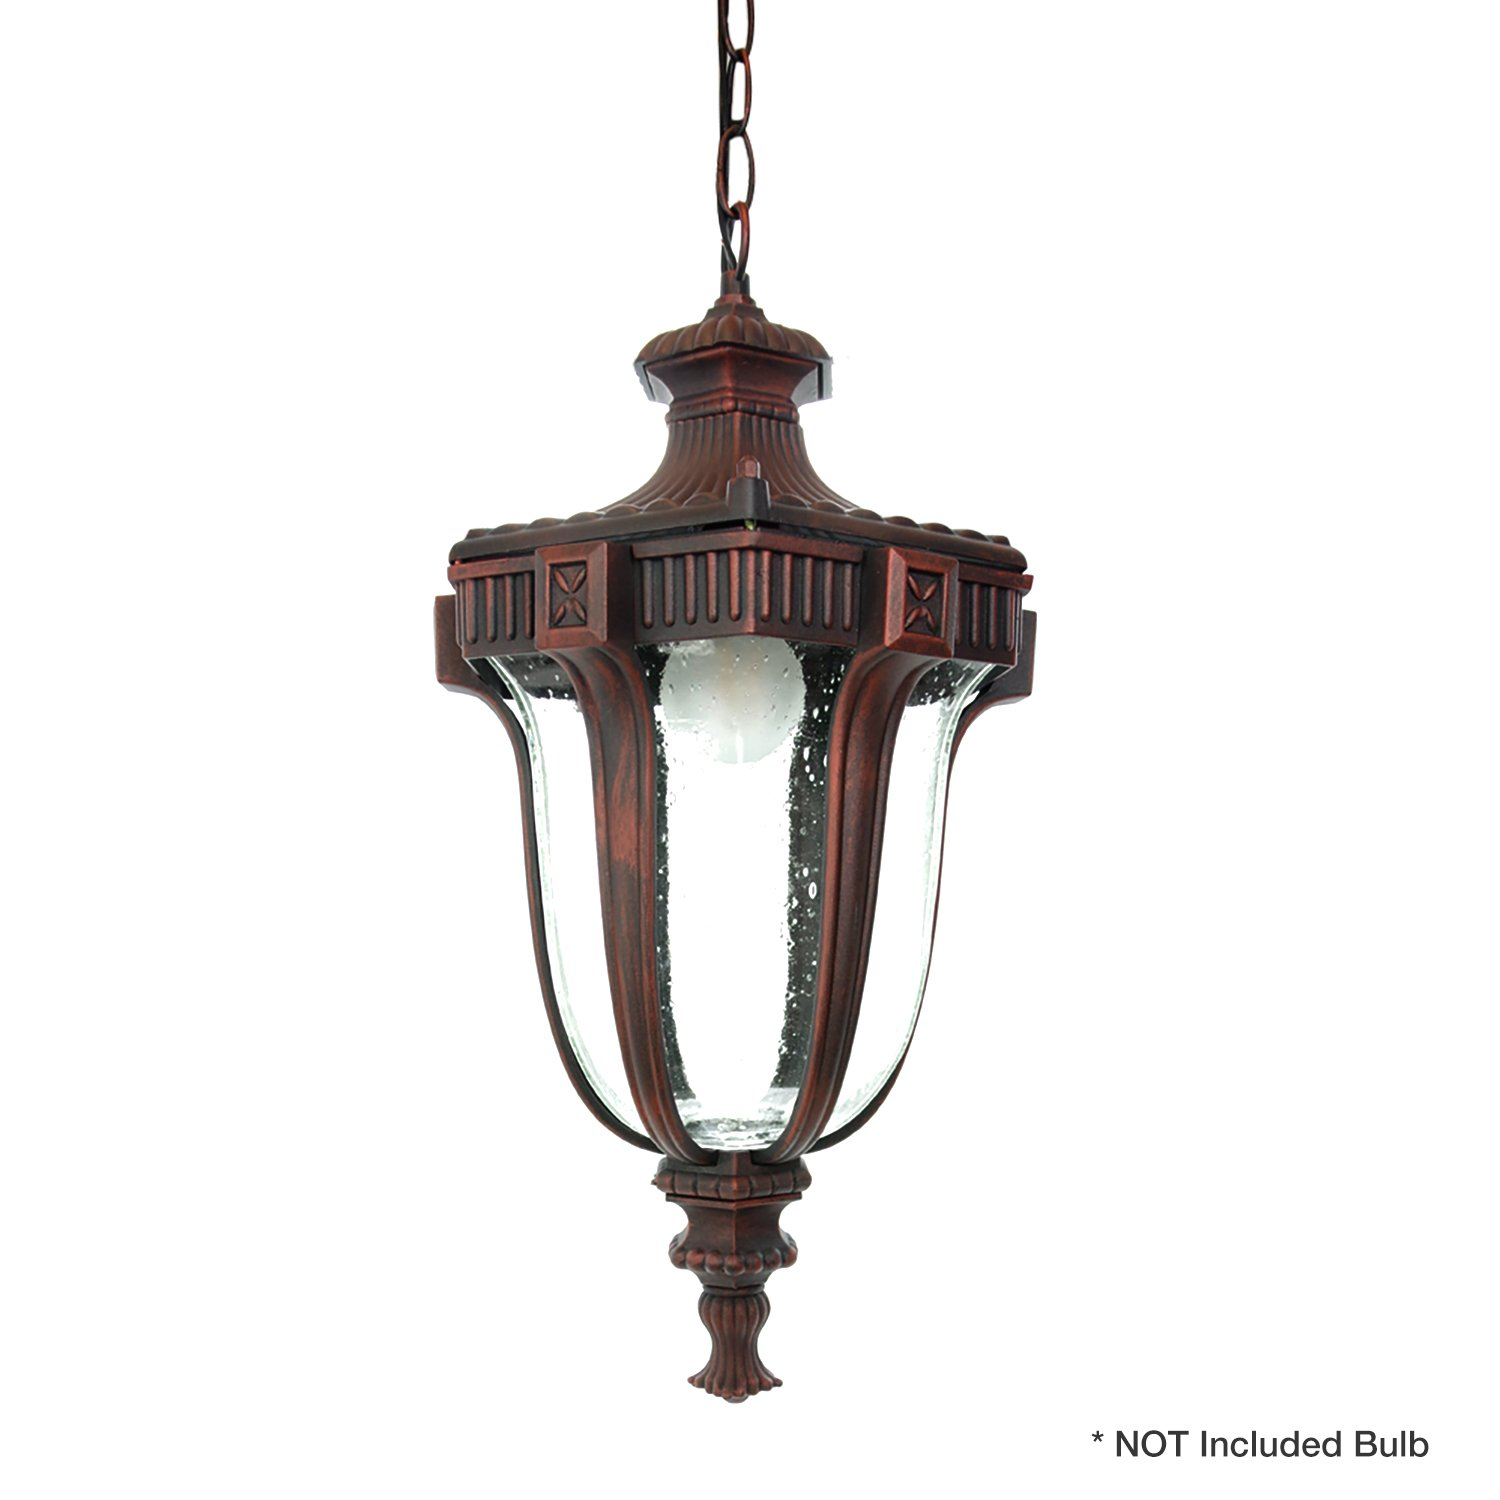 eTopLighting Le Eclairage Collection Terra-cotta Finish Exterior Outdoor Lantern Light Frost Glass, Pendant APL1098 by eTopLighting